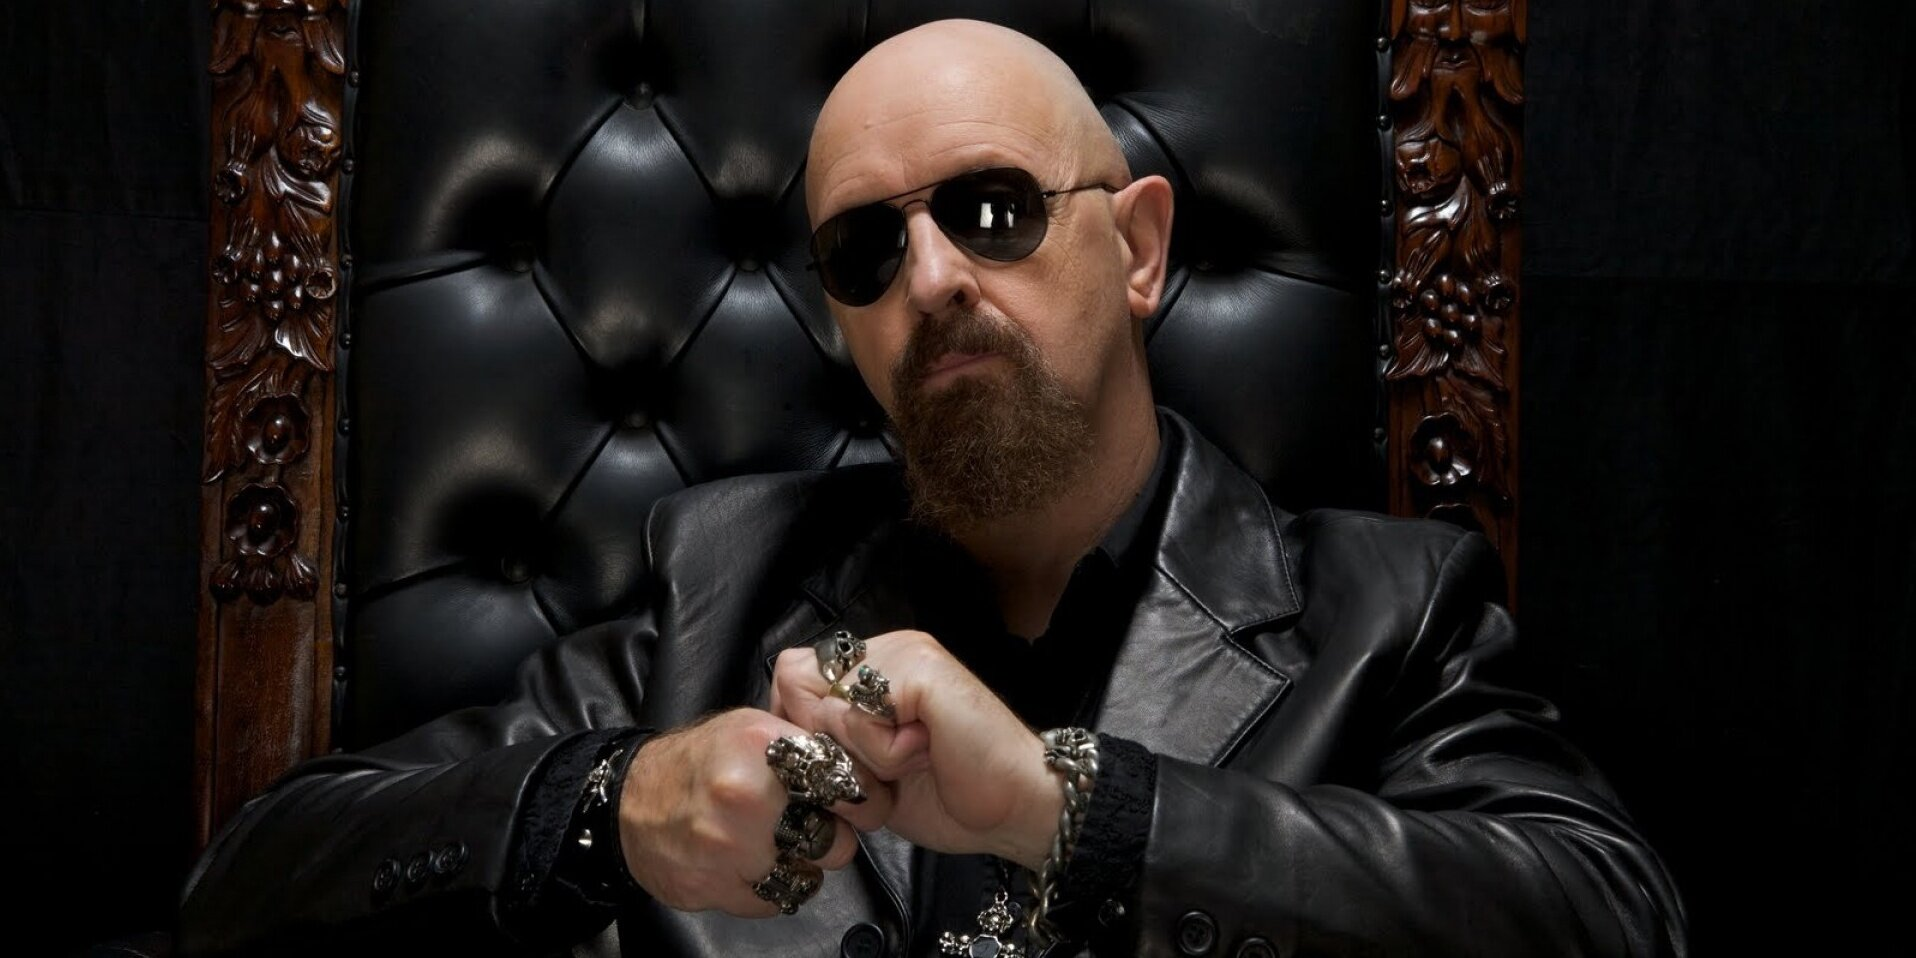 """Rob Halford - Halford openly admitted being a huge Lady Gaga fan, so when asked if he had seen the insane YouTube mashup of Lady Gaga's Judas and Judas Priest's Painkiller by mashup artist Wax Audio, Halford said he had just been watching it again a few days before the interview.""""I was watching it with Chris Freeman, who was the bass player for gay punk band Pansy Division. He came to the pre-show the other day and we got the iPad out and he had his mind blown. It has 1,750,000 views. I love it.""""From The Vancouver Sun"""